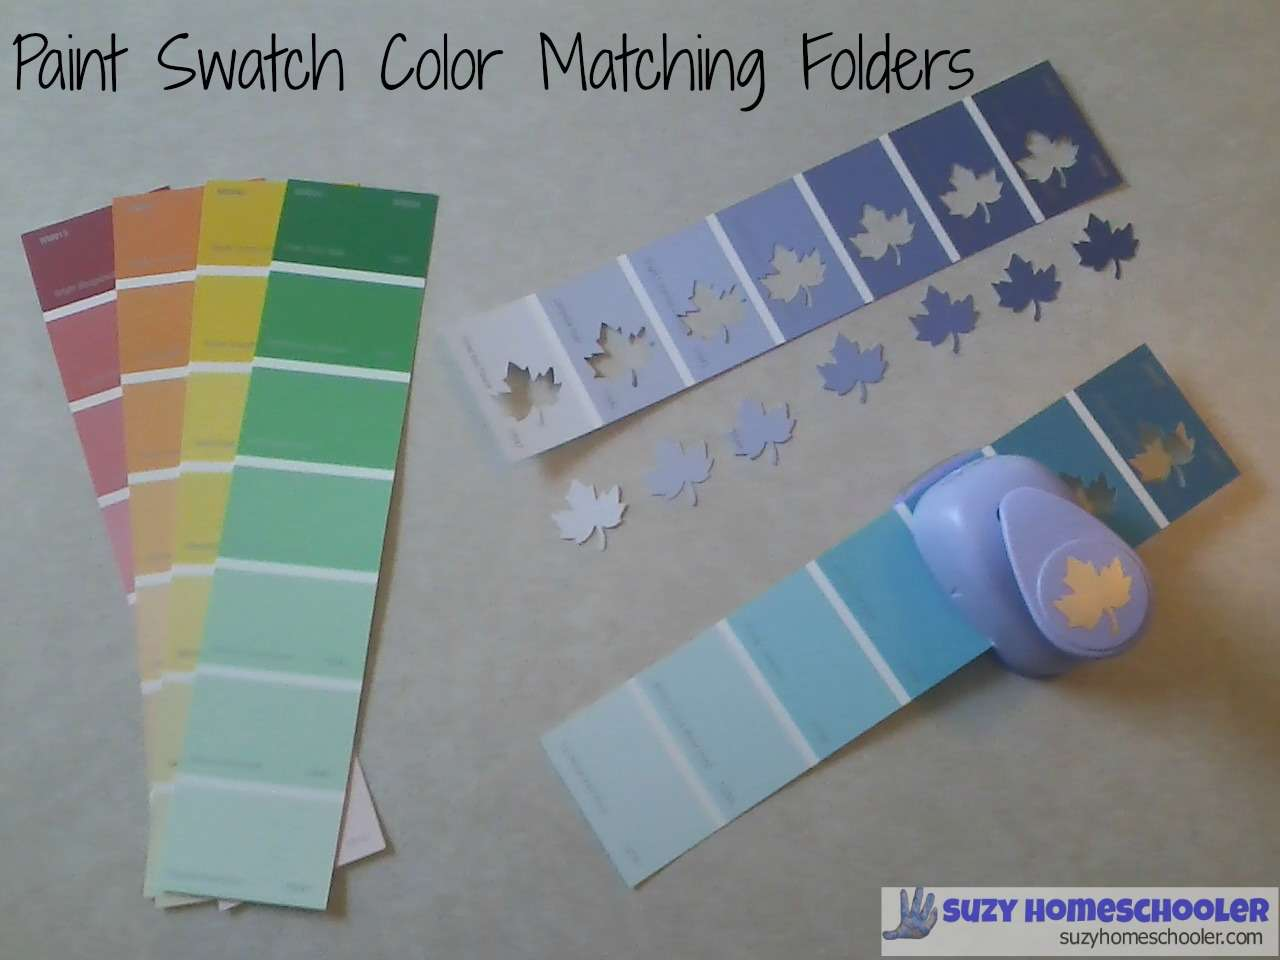 Paint Swatch Color Matching Folders Suzy Homeschooler